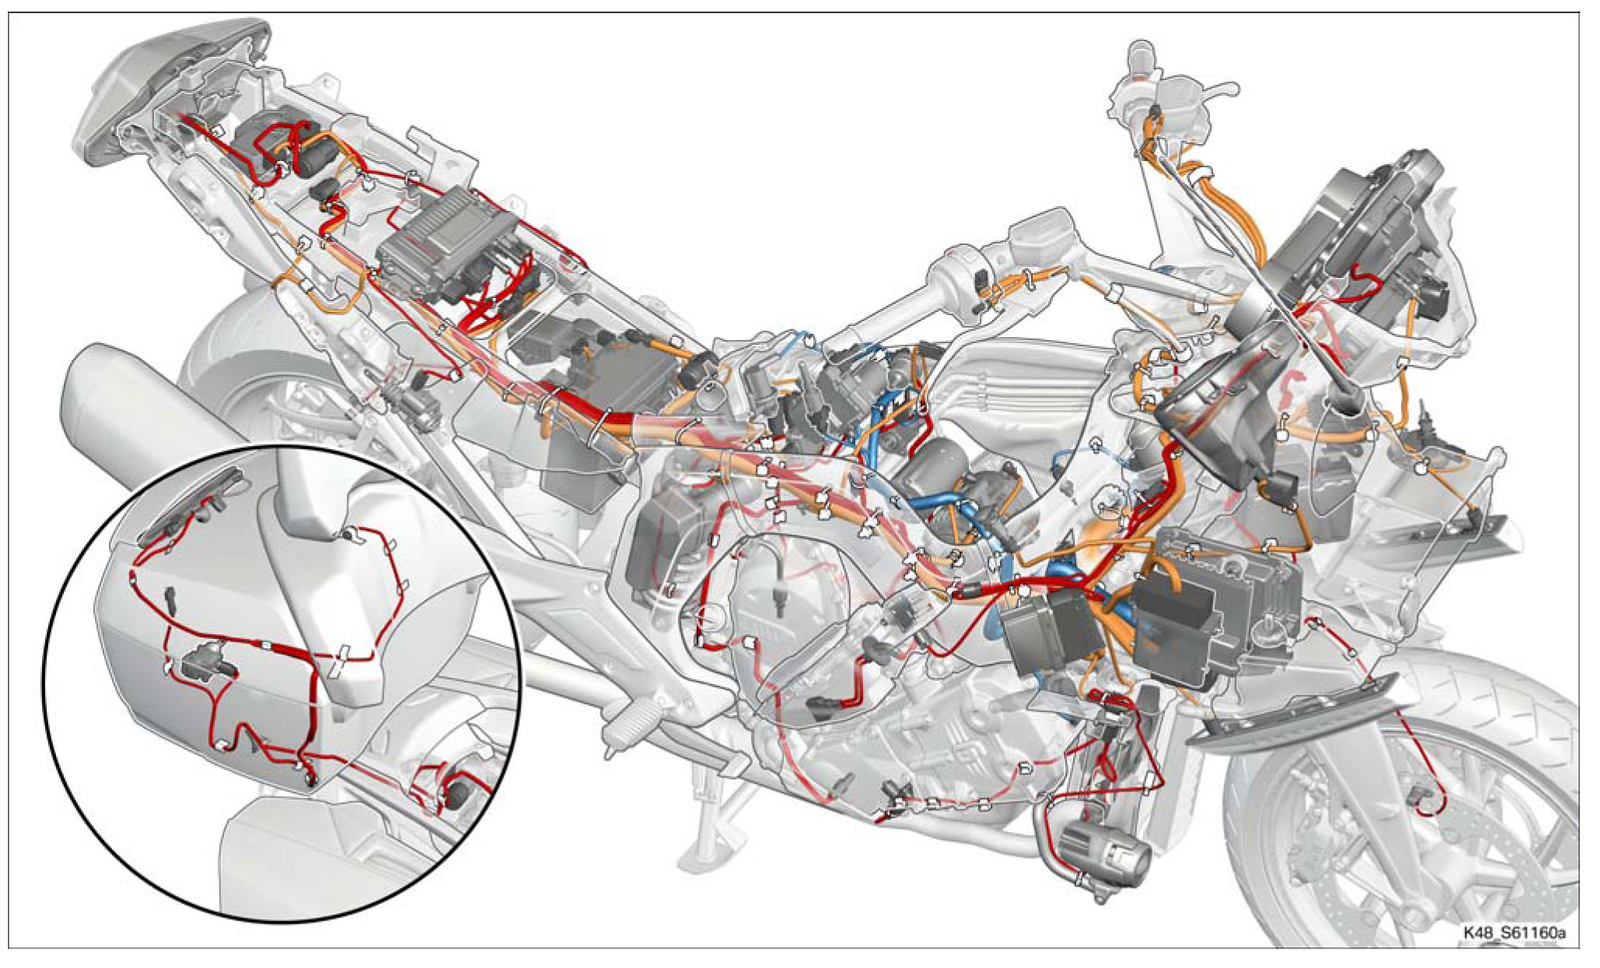 Wiring Diagrams - How the K1600 is wired - BMW K1600 Forum  BMW